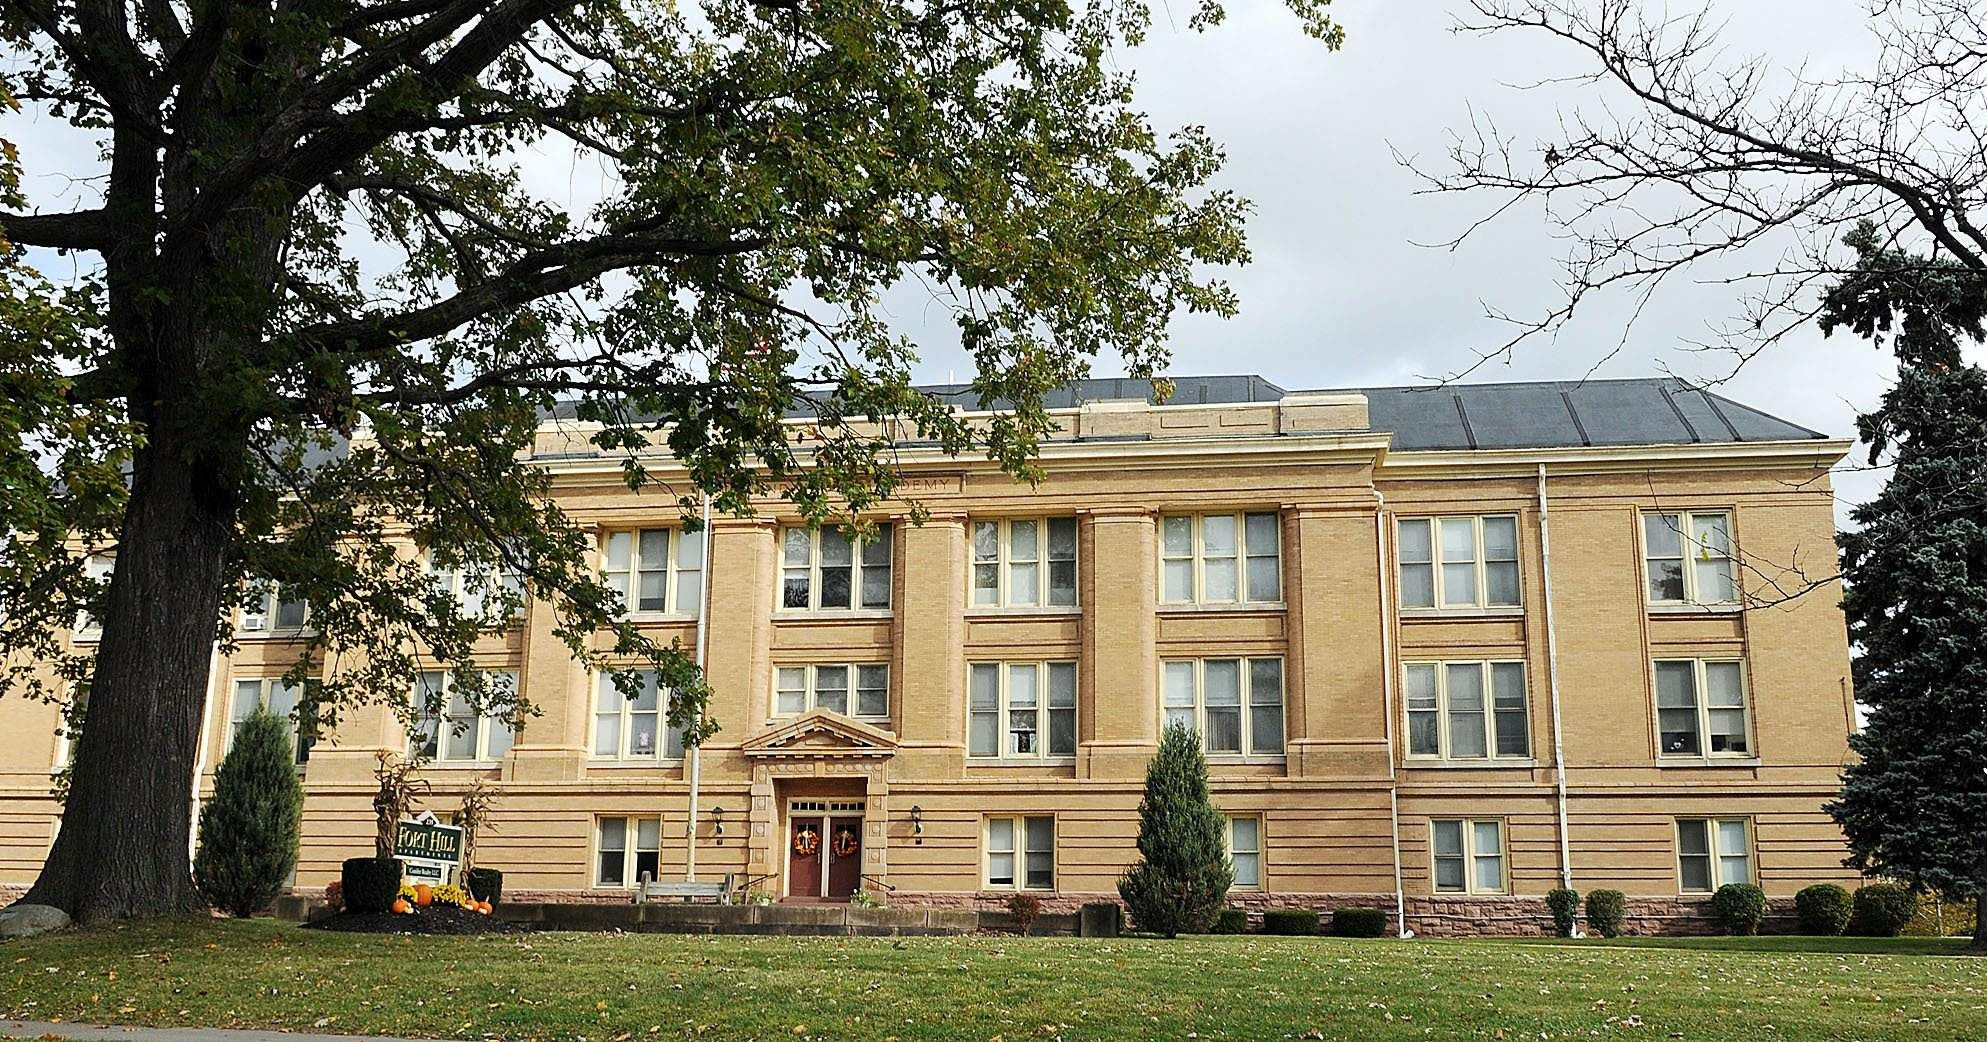 North Main- The old Canandaigua Academy, View from North Main Street.